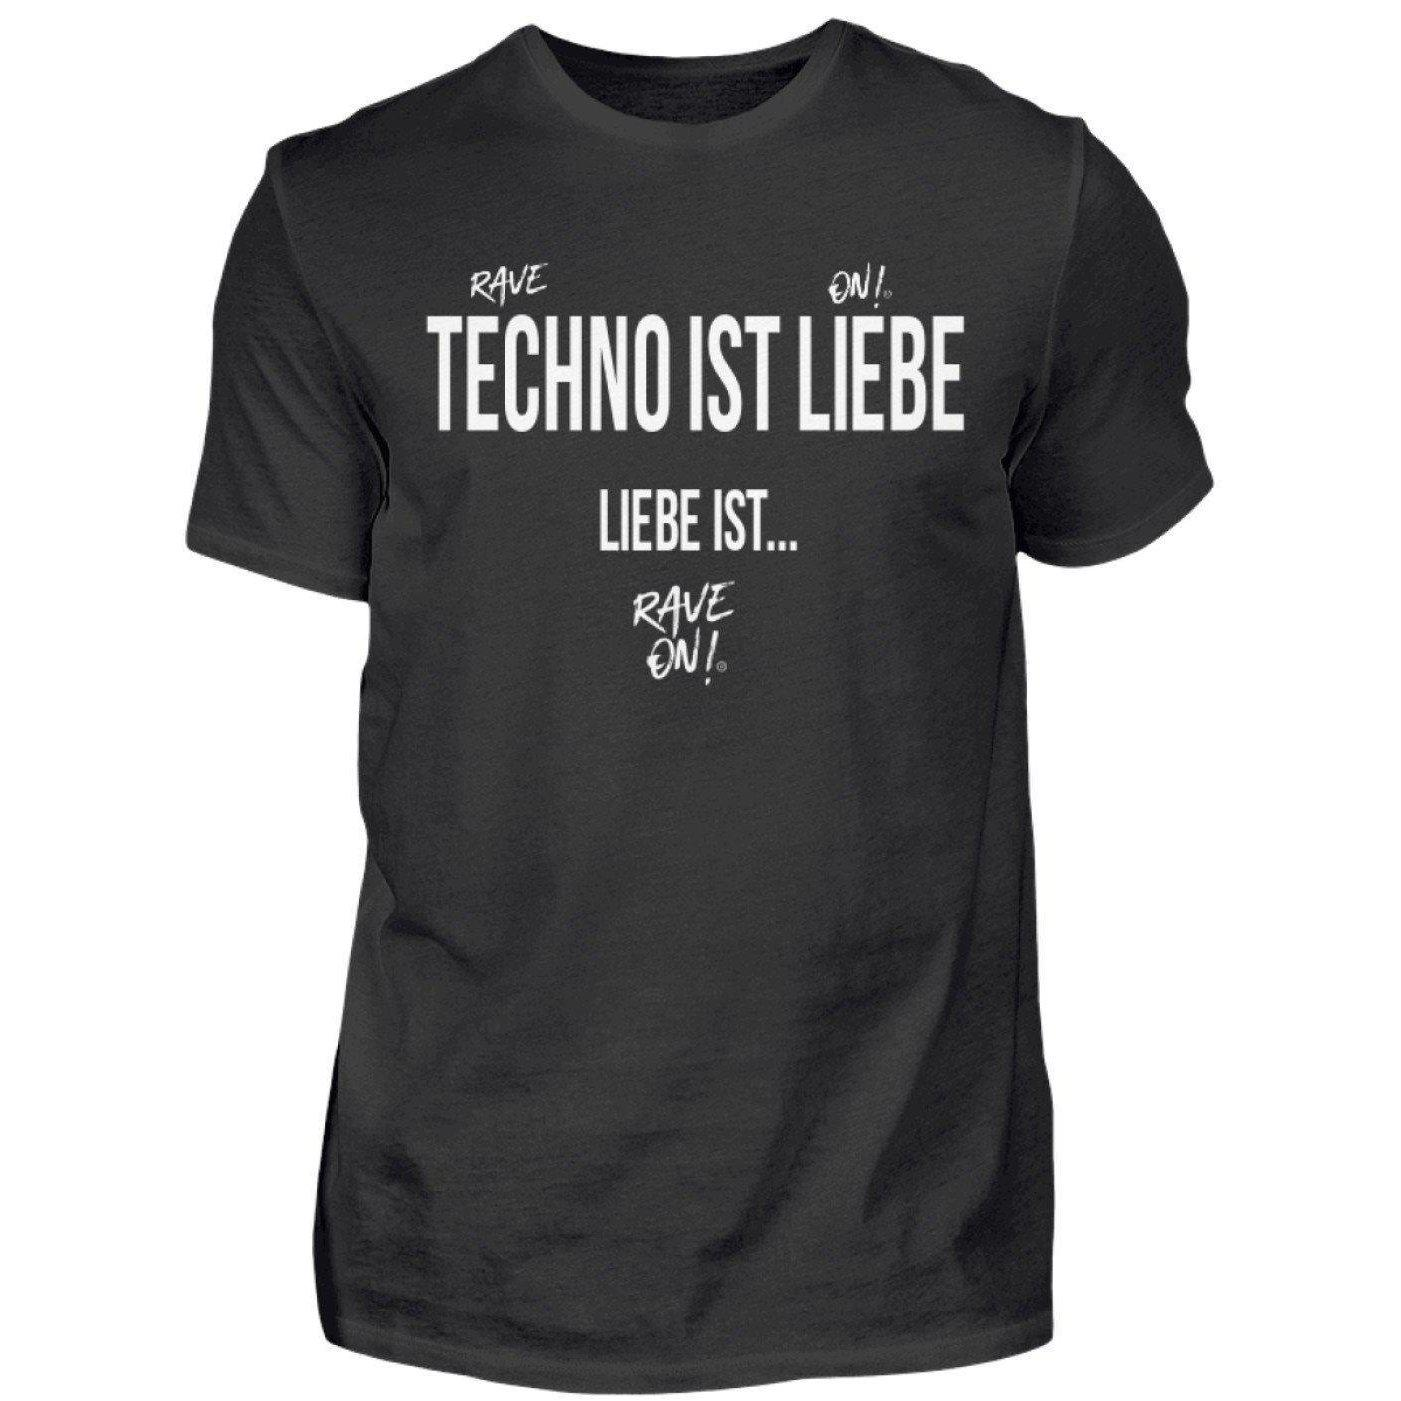 Techno is ... love is Rave On!® Shirt - Men's Shirt Men's Basic T-Shirt Black / S - Rave On!® the club & techno scene shop for cool young fashion streetwear style & fashion outfits + sexy festival 420 stuff